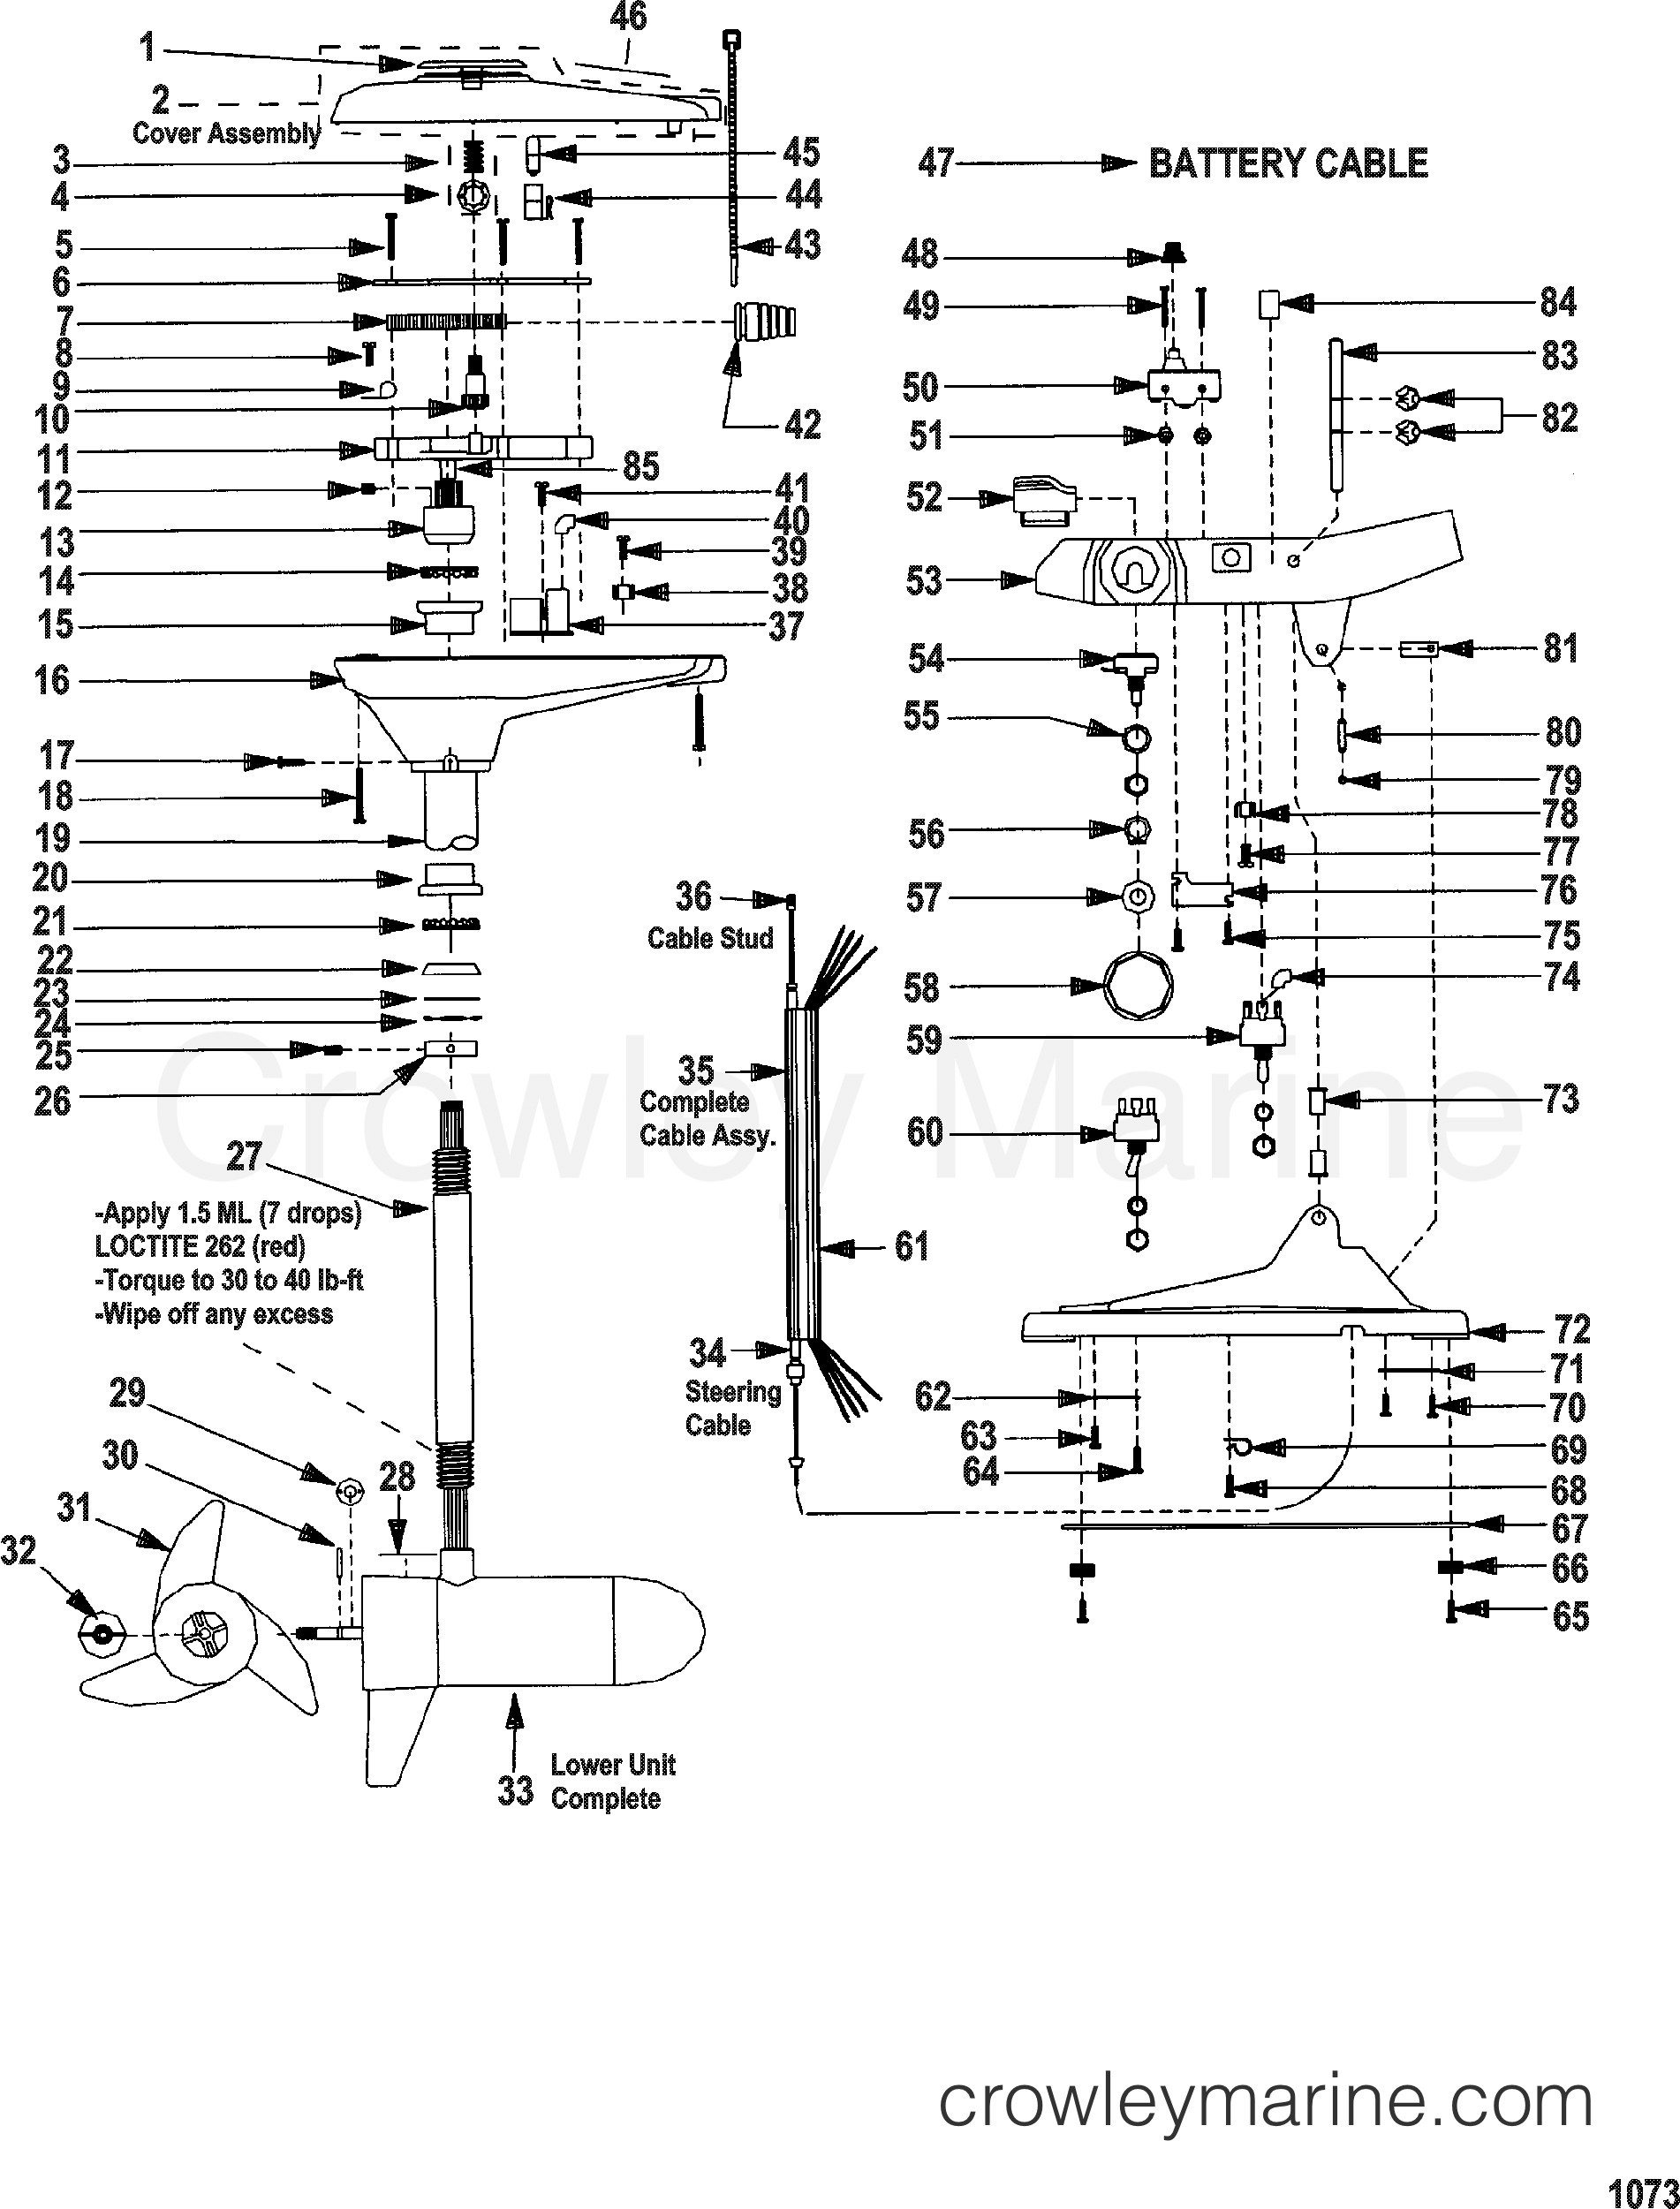 49cc Bicycle Engine Wiring Diagram List Of Schematic Circuit Pocket Bike As Rh Detoxicrecenze Com